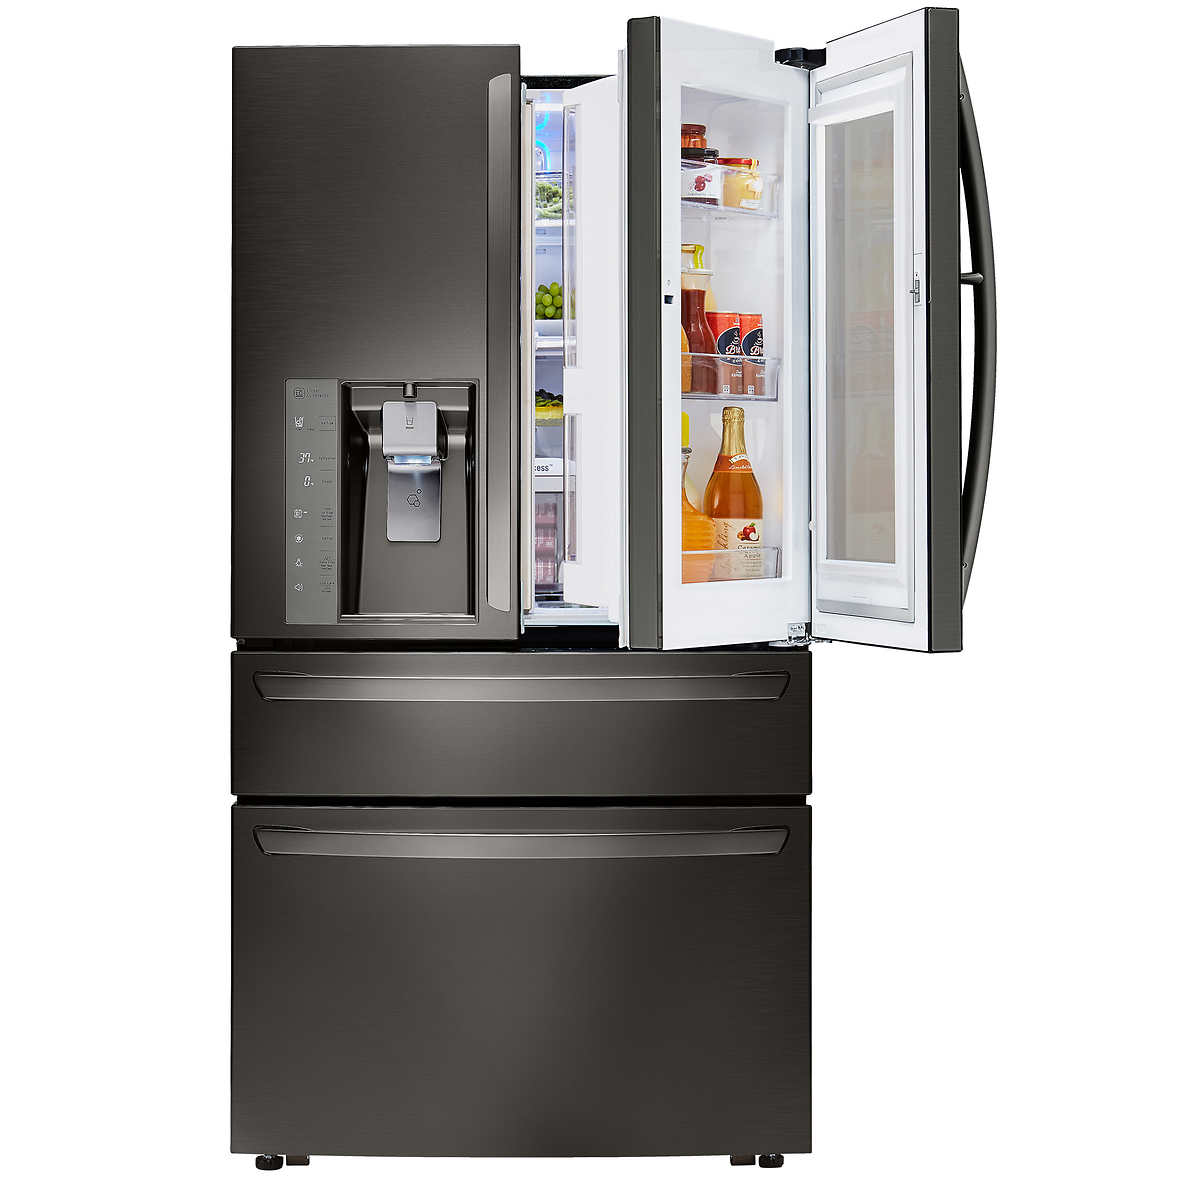 Whirlpool white ice costco - Lg 30cuft 4 Door French Door With Instaview In Black Stainless Steel